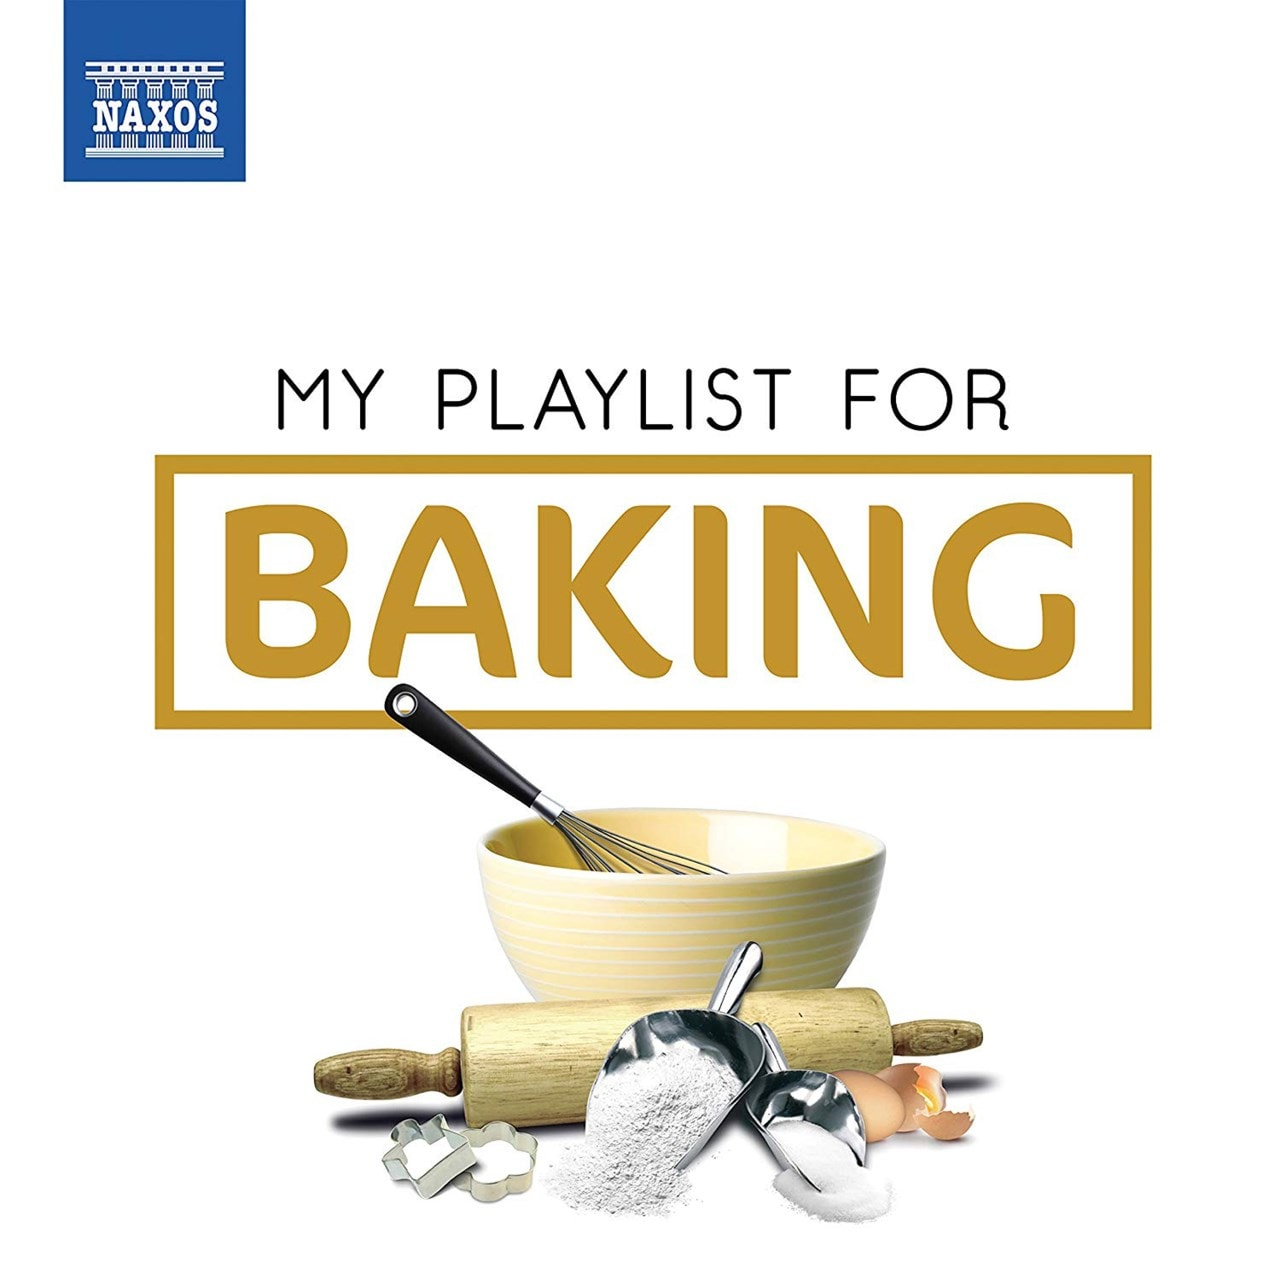 My Playlist for Baking - 1